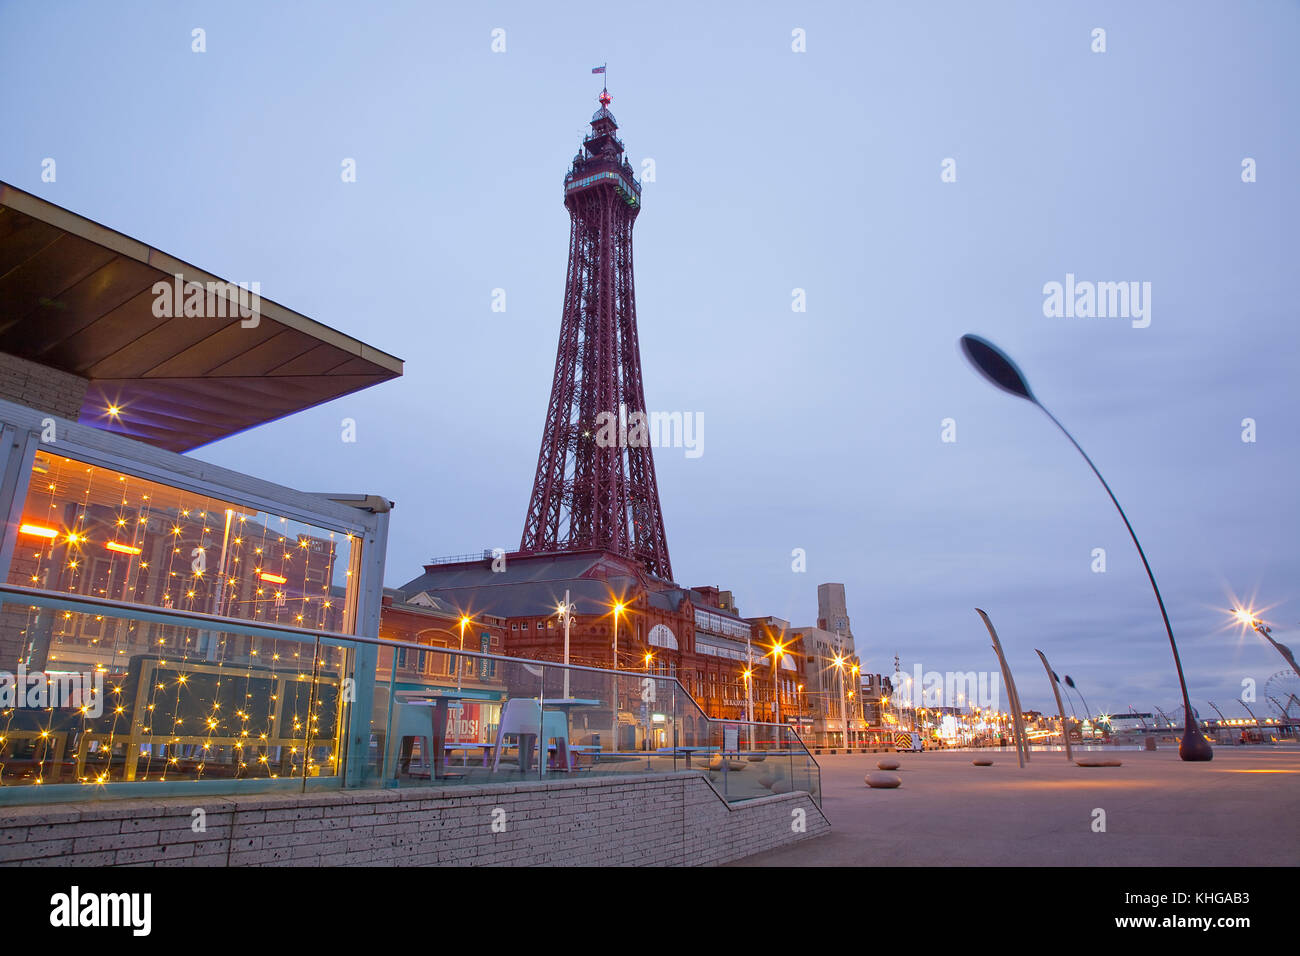 England, Lancashire, Blackpool, Seafront promenade with Tower at dusk. - Stock Image